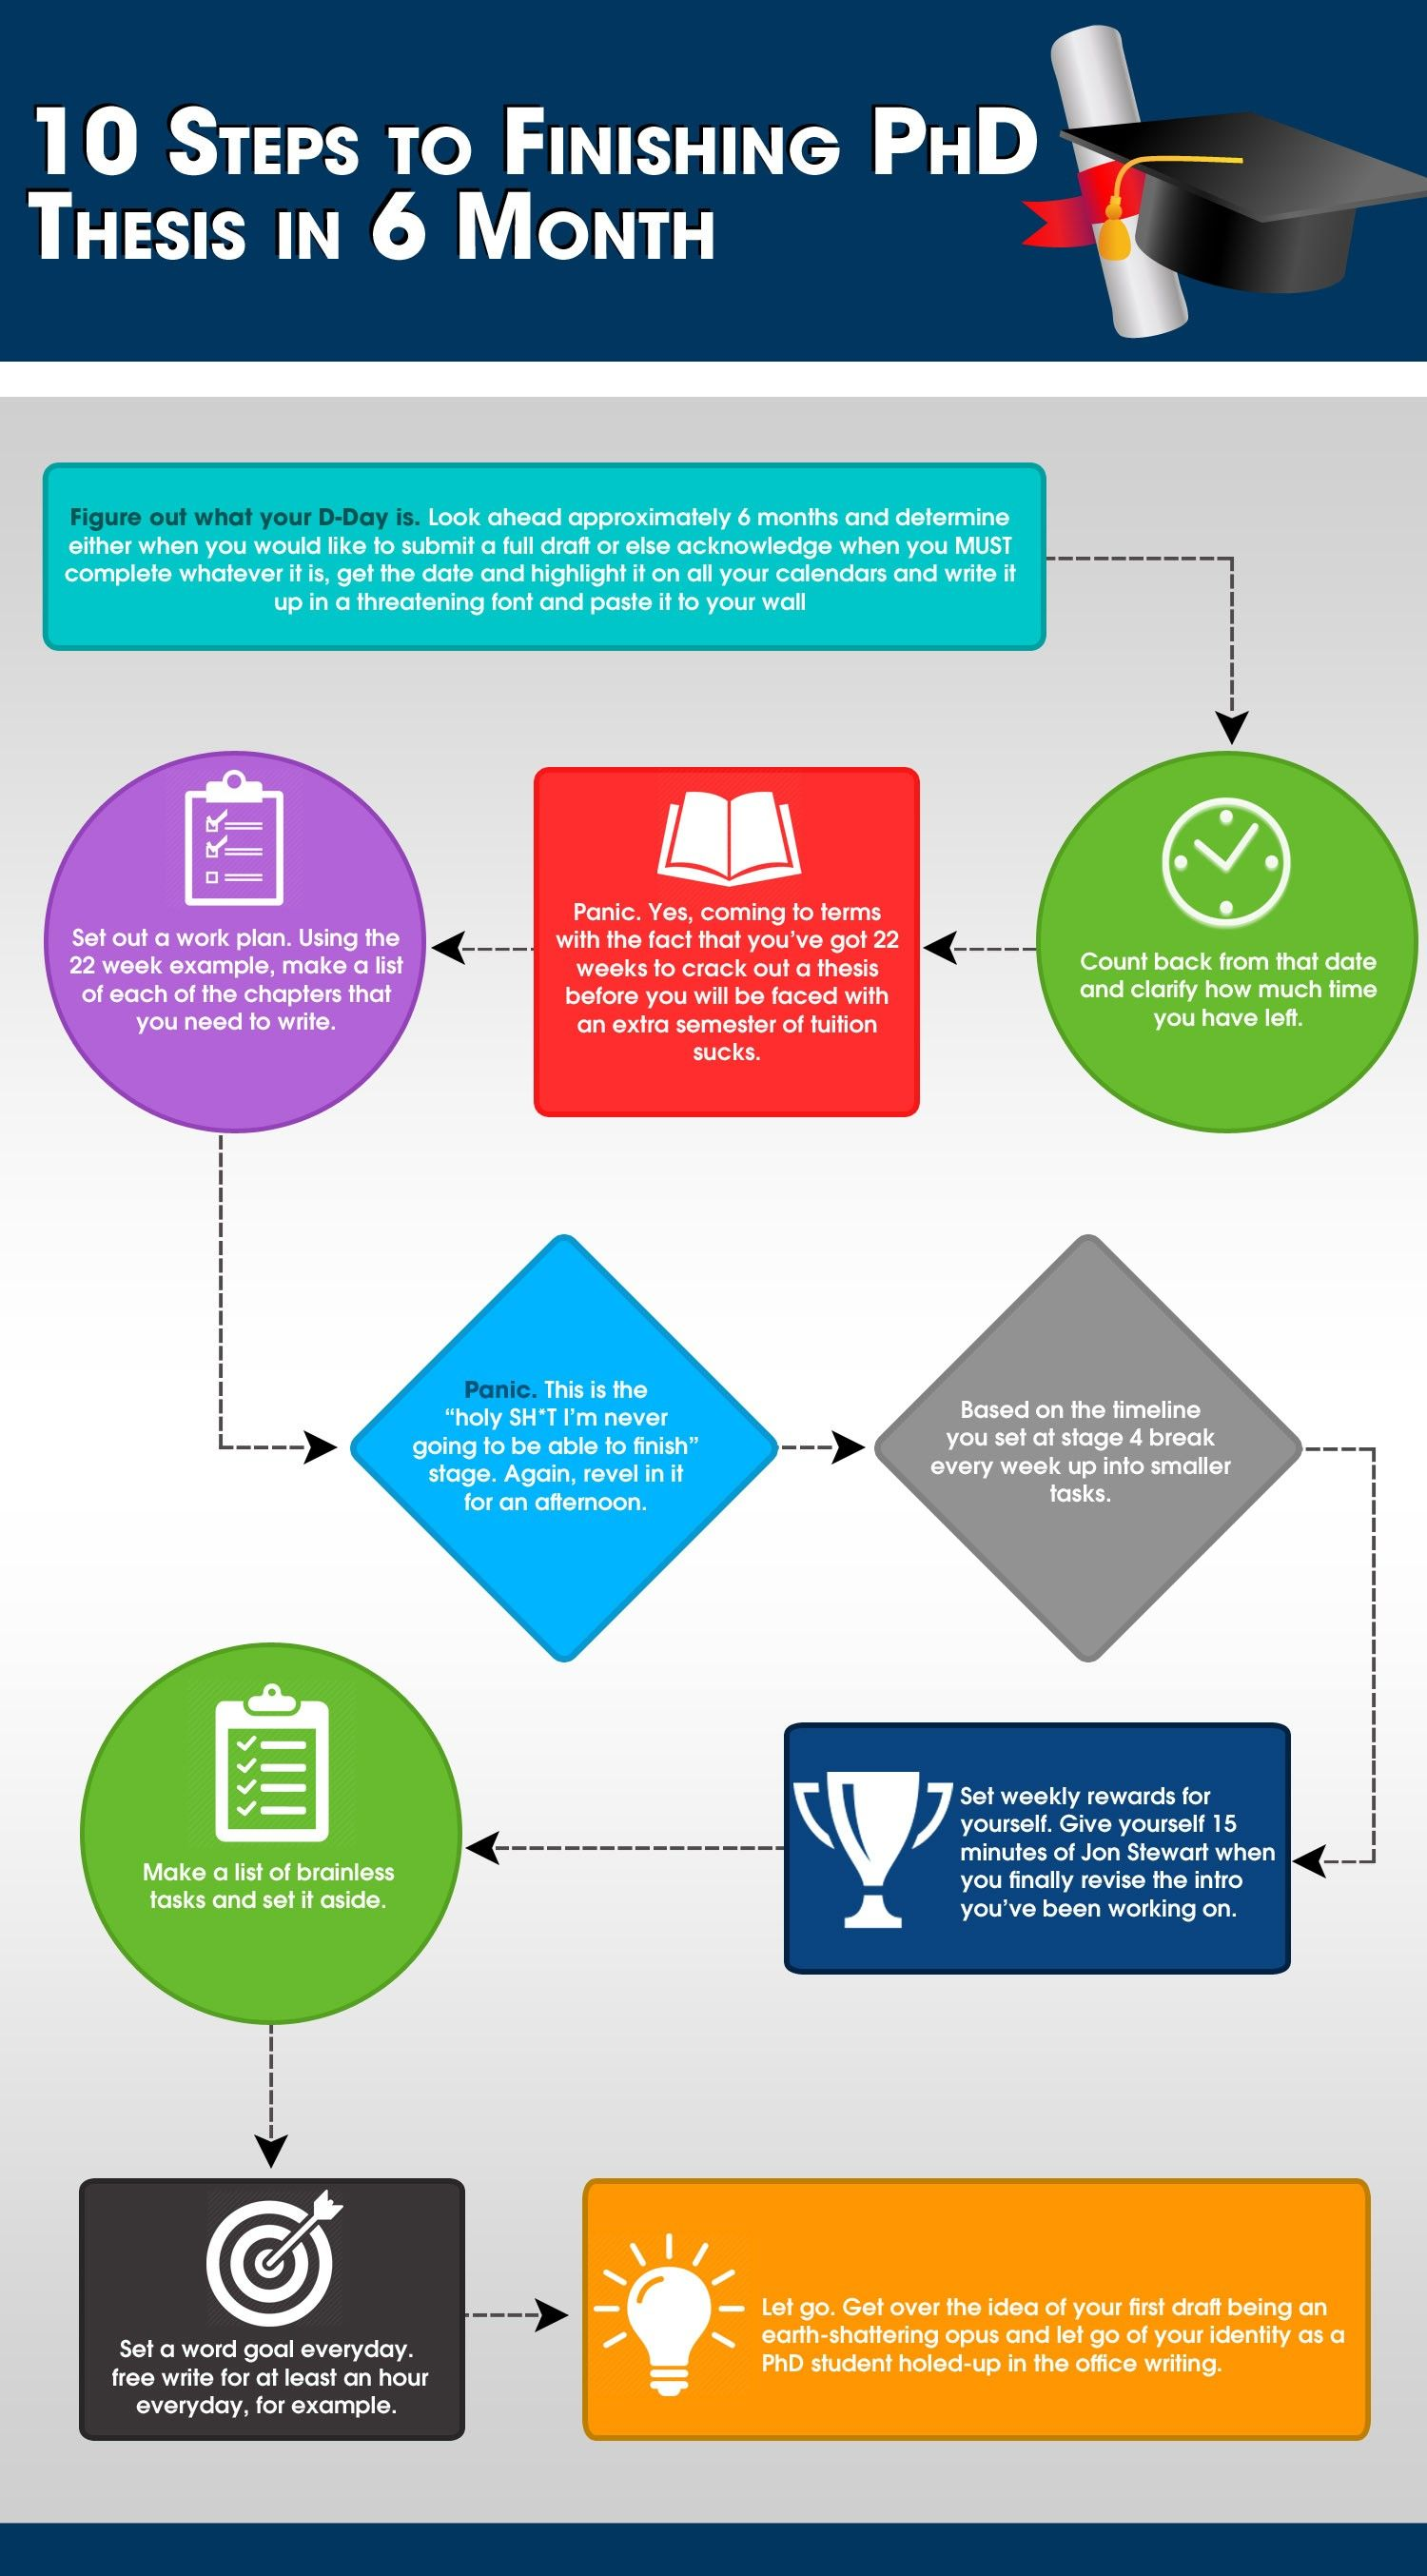 Ten Step To Finishing Phd Thesi Writing In 6 Month Infographic Life Paper Service Dissertation